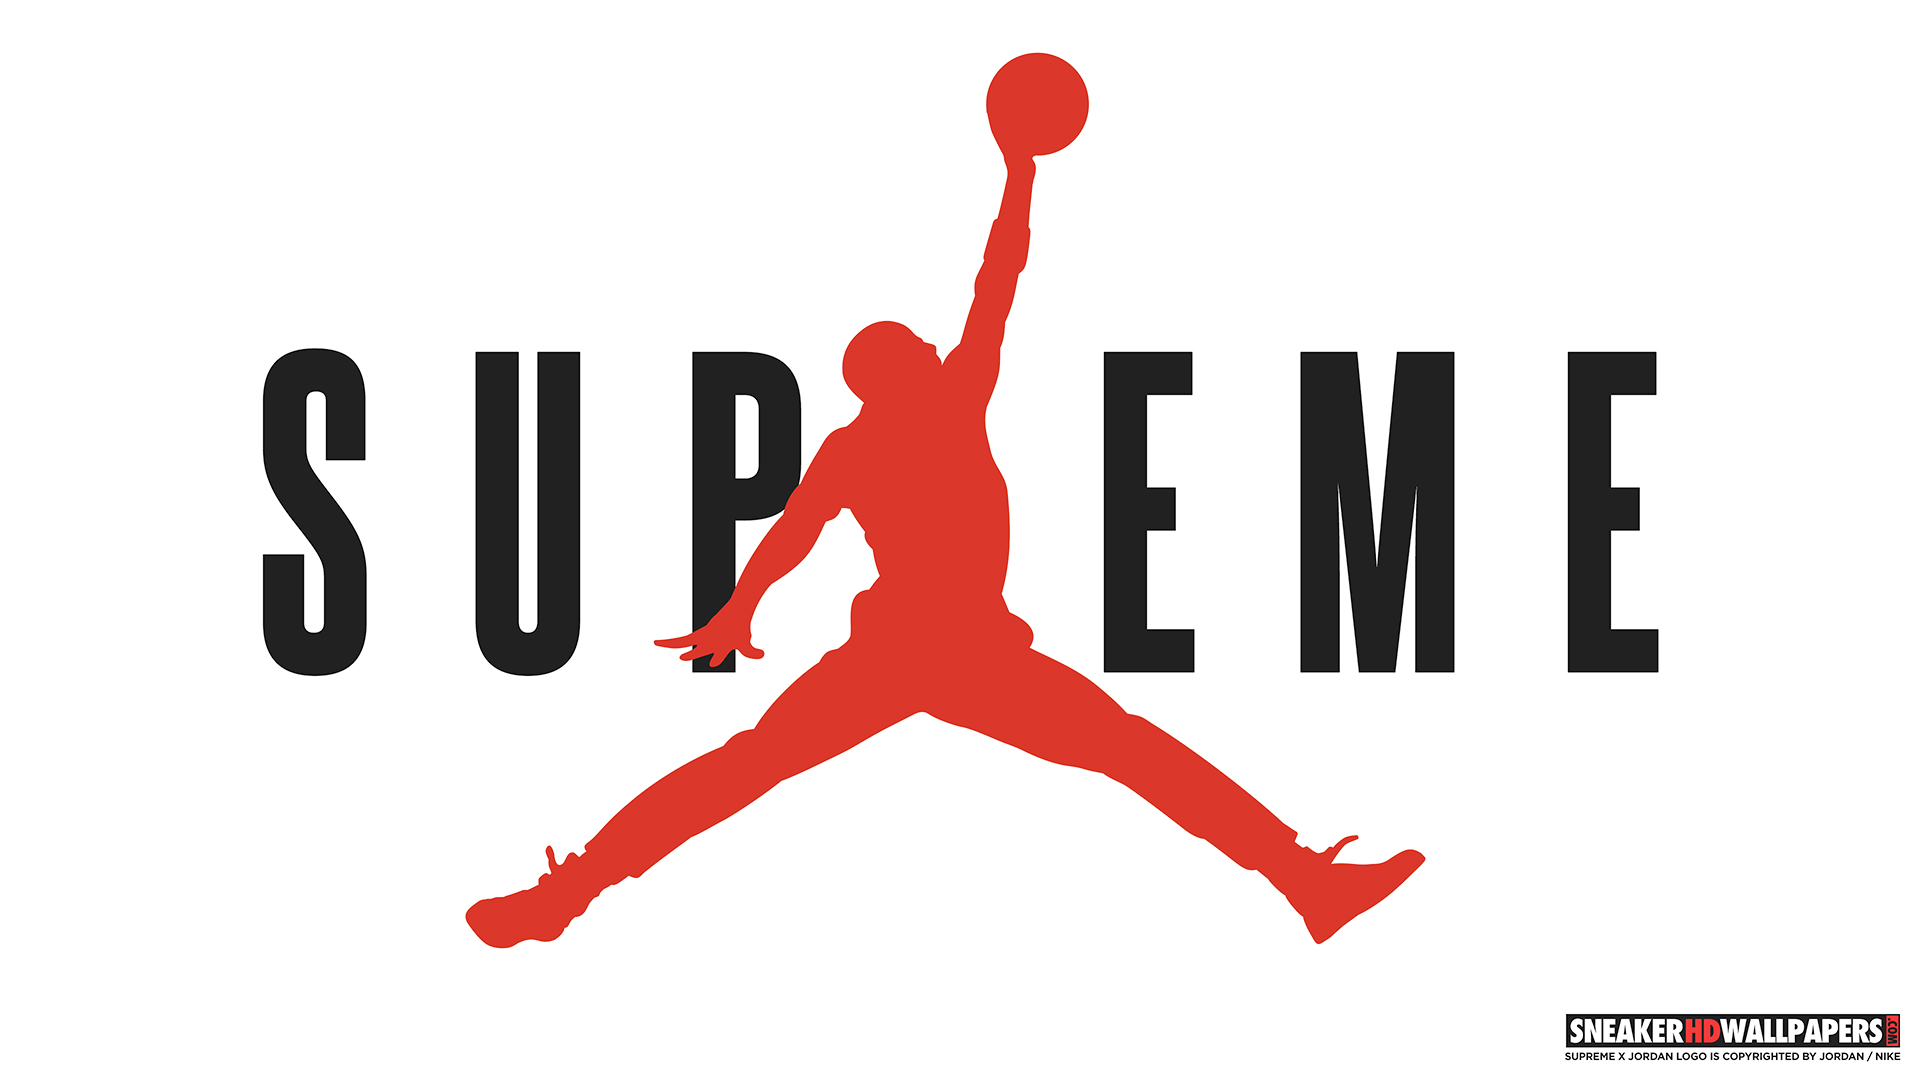 4K wallpaper Supreme x Jordan HD wallpaper Supreme x Jordan iPhone 1920x1080